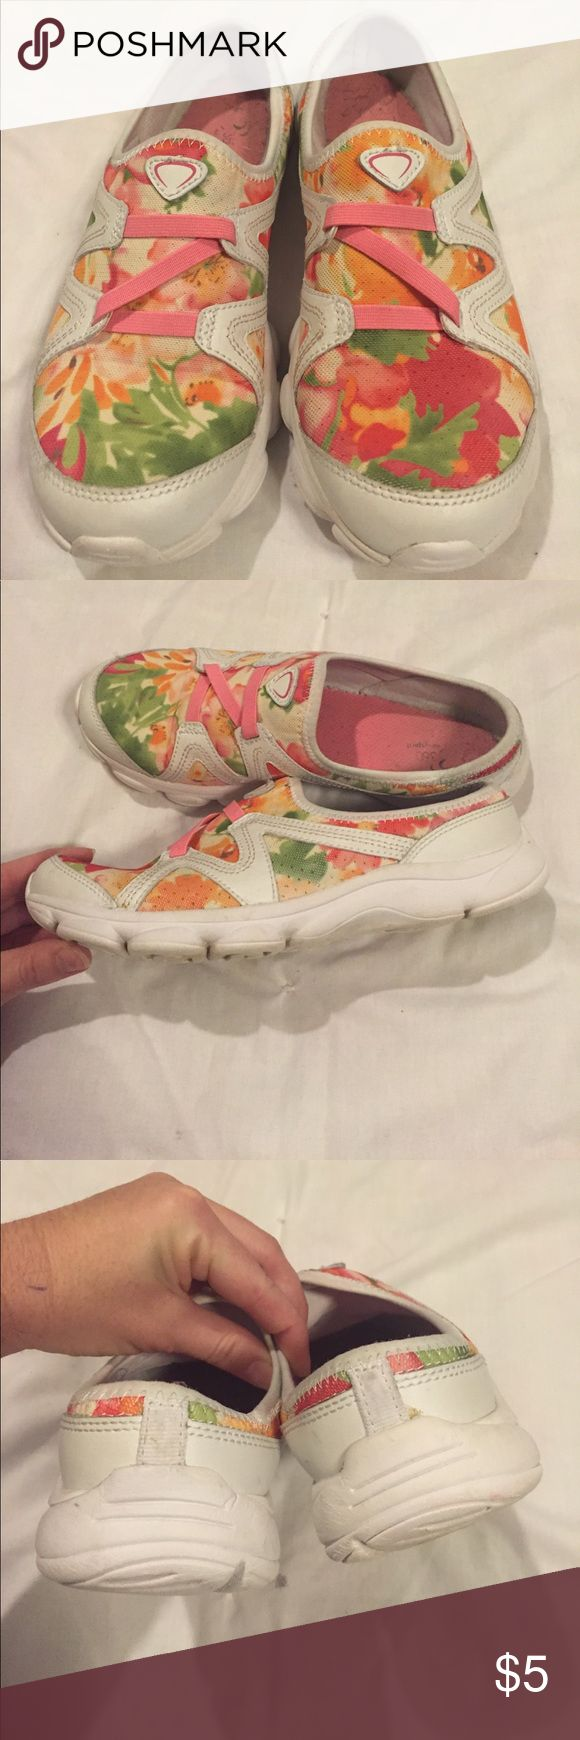 Easy spirit 360 slip on tennis shoe Good used condition, rubber sole Easy Spirit Shoes Mules & Clogs